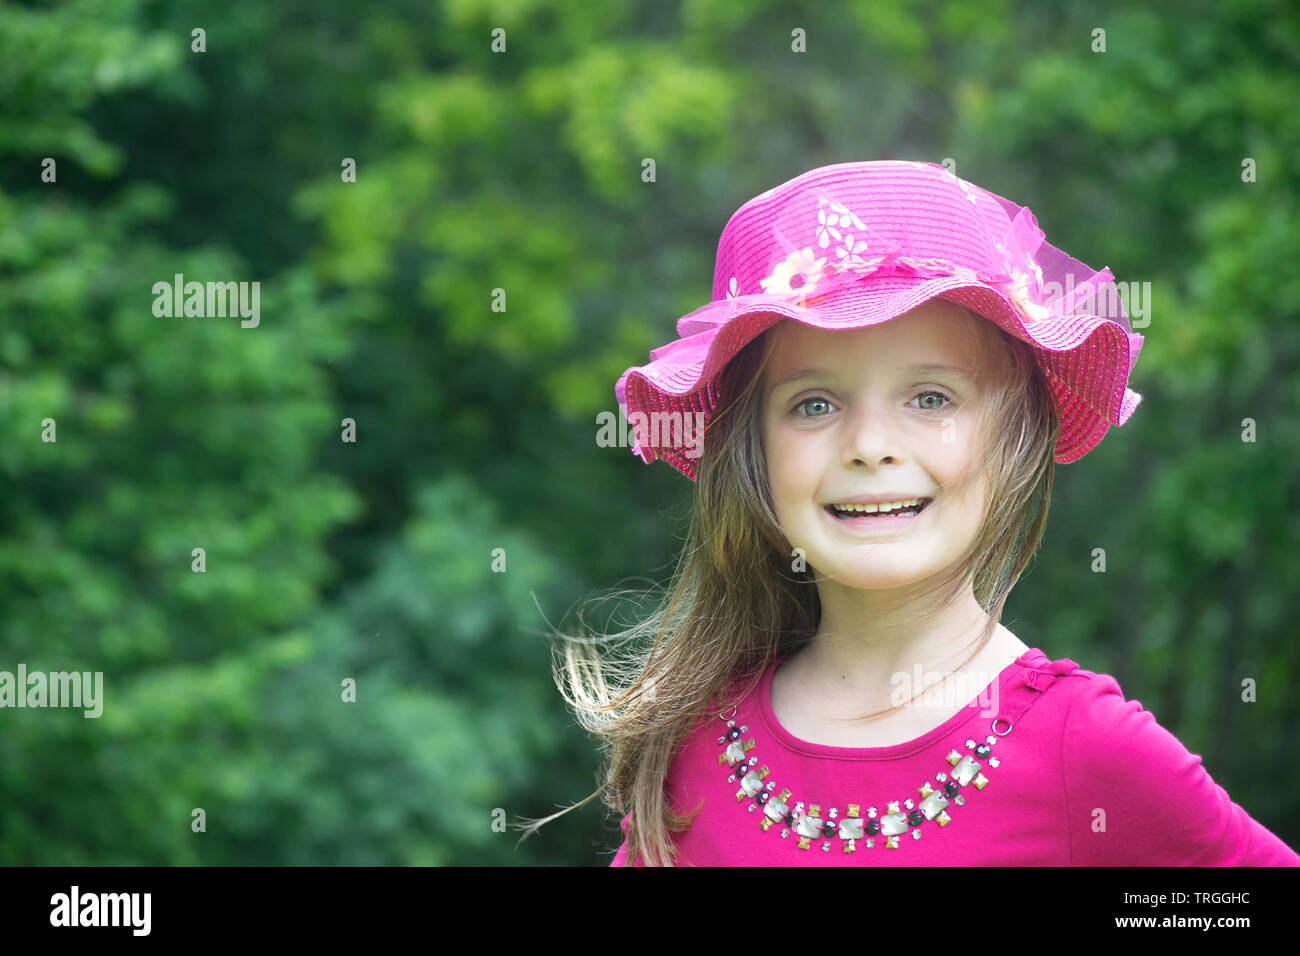 Outdoor portrait of a little girl wearing a summer hat. Copy space to the left. - Stock Image